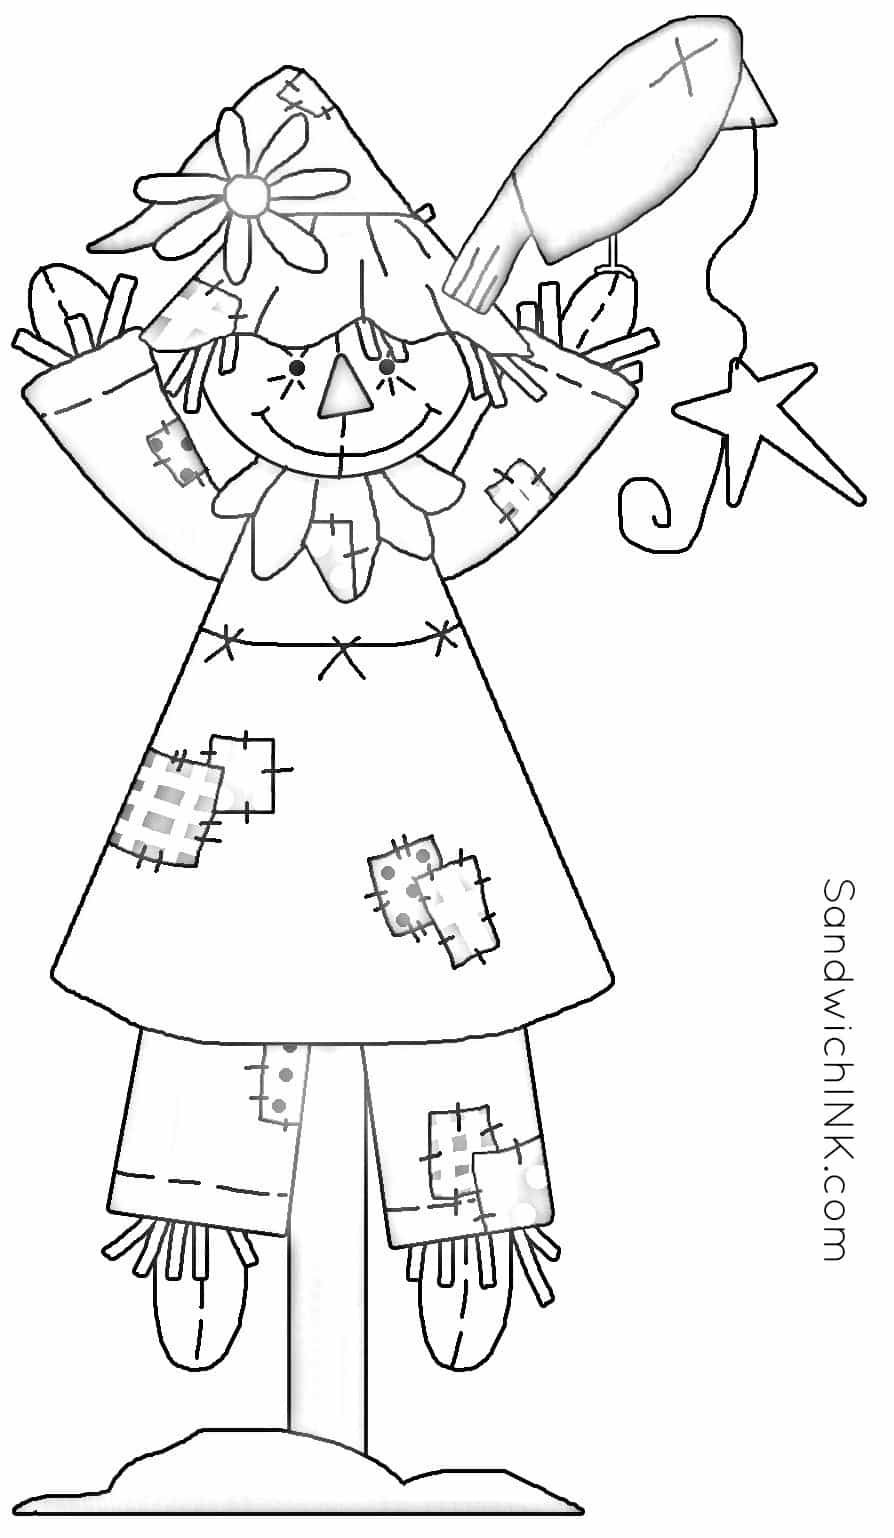 Fall Scarecrow Coloring Pages And Word Search Activities Elderly Parents Can Enjoy With Grandkids Coloring Pages Fall Scarecrows Scarecrow